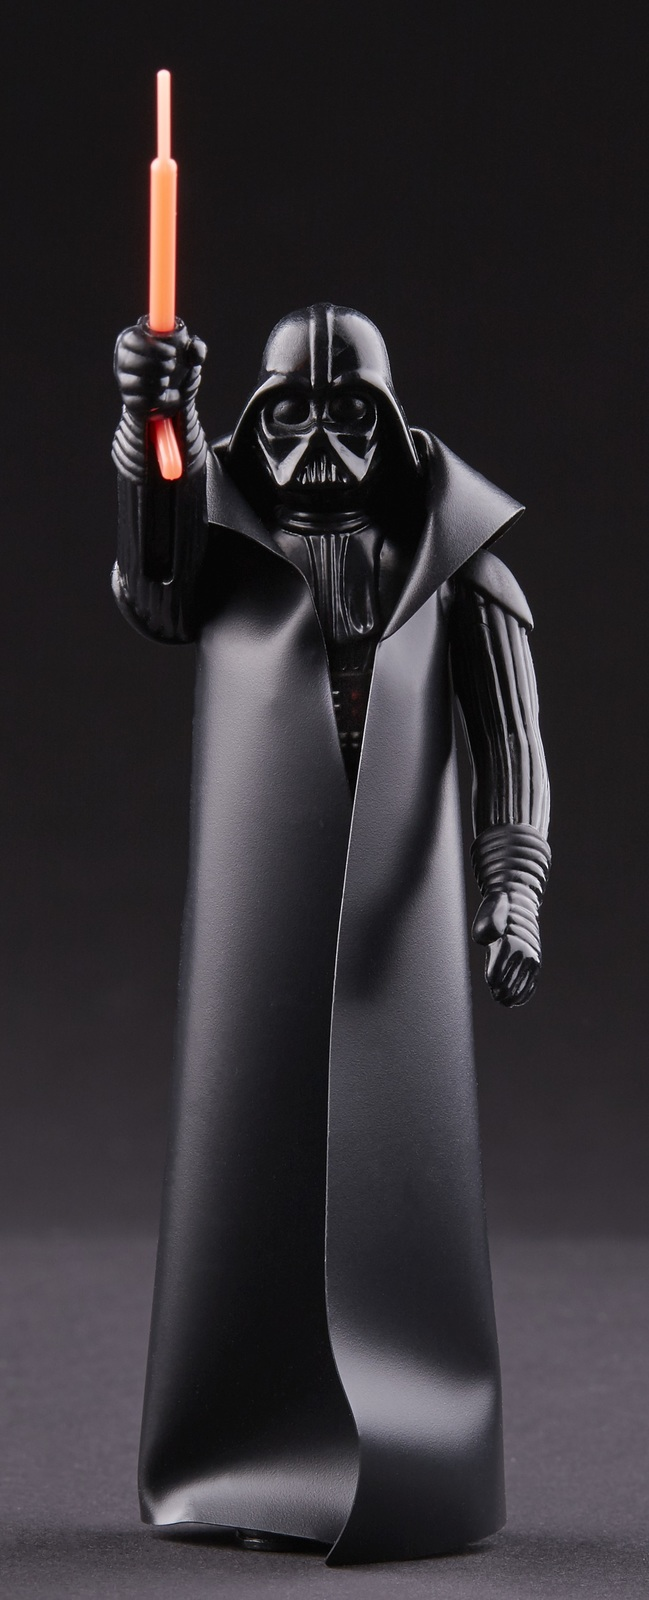 "Star Wars: Darth Vader - 3.75"" Retro Action Figure image"